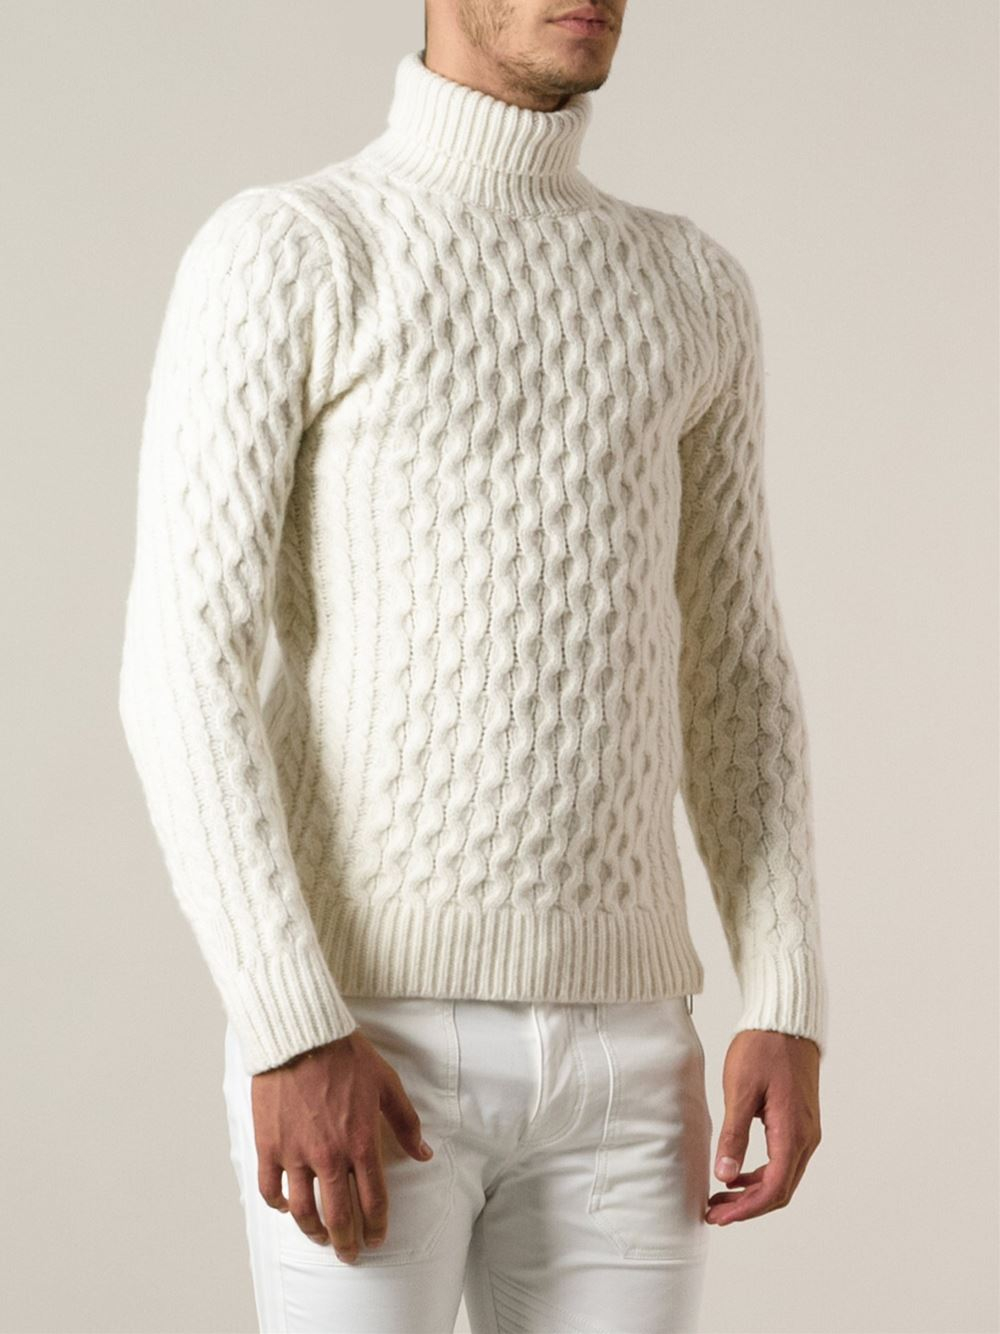 Cheap Genuine KNITWEAR - Turtlenecks Gallery Sale Hot Sale Outlet Shopping Online Free Shipping From China Cheap Sale Classic WgGRgnV